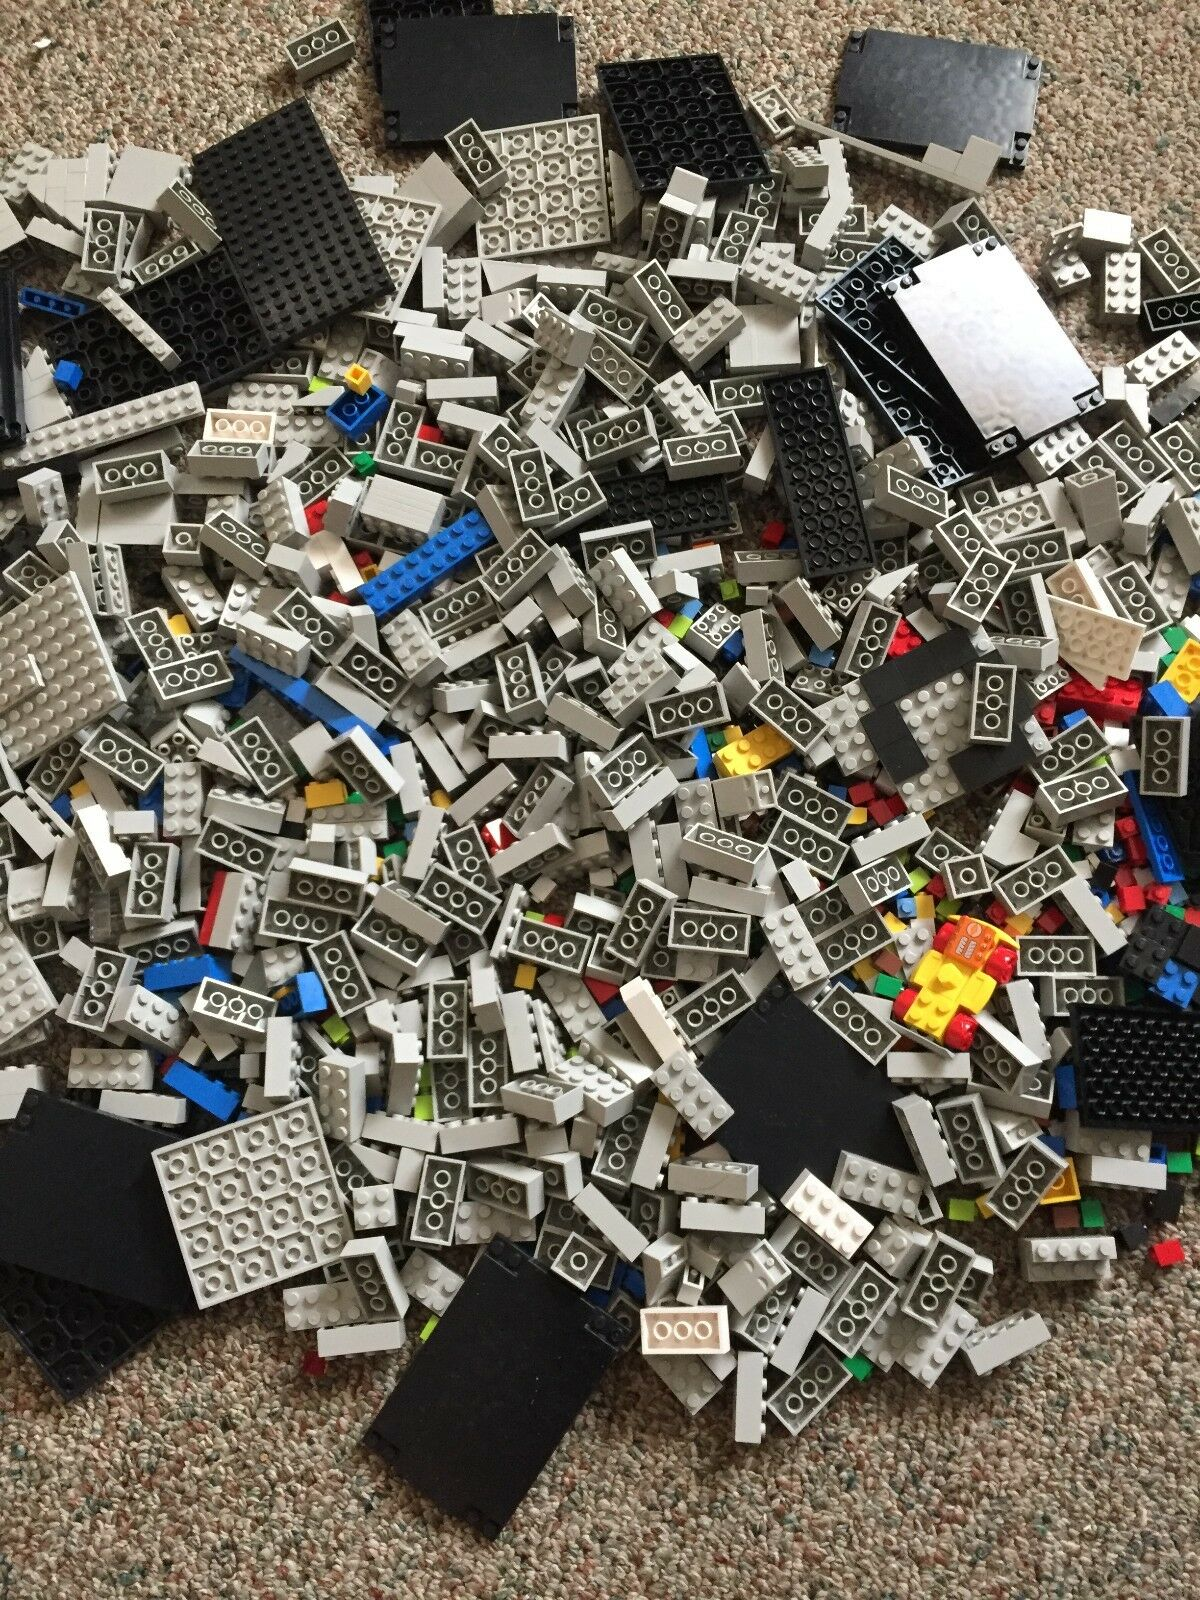 Lego LOT figures, keychain keychain keychain and accessories. And lego building pieces. 90779e